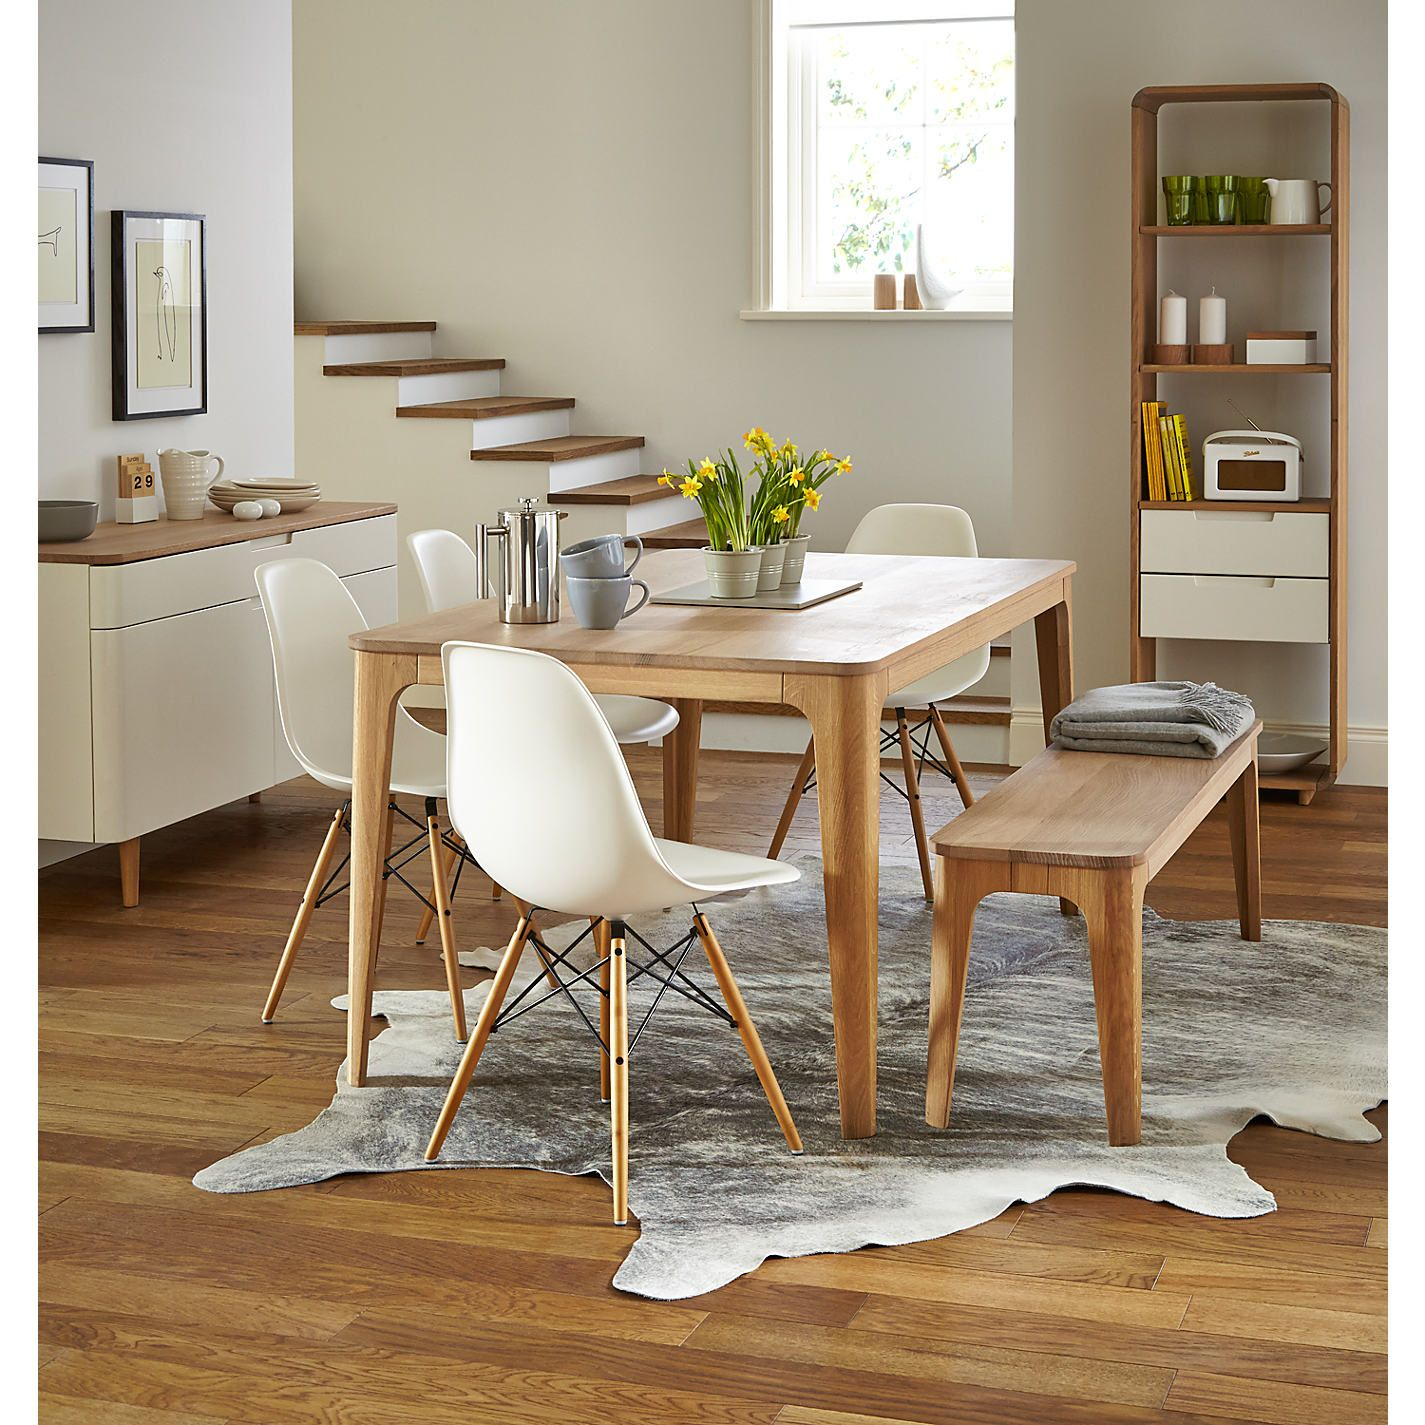 Ebbe Gehl For John Lewis Mira Living & Dining Room Furniture Pleasing John Lewis Dining Room Furniture Review